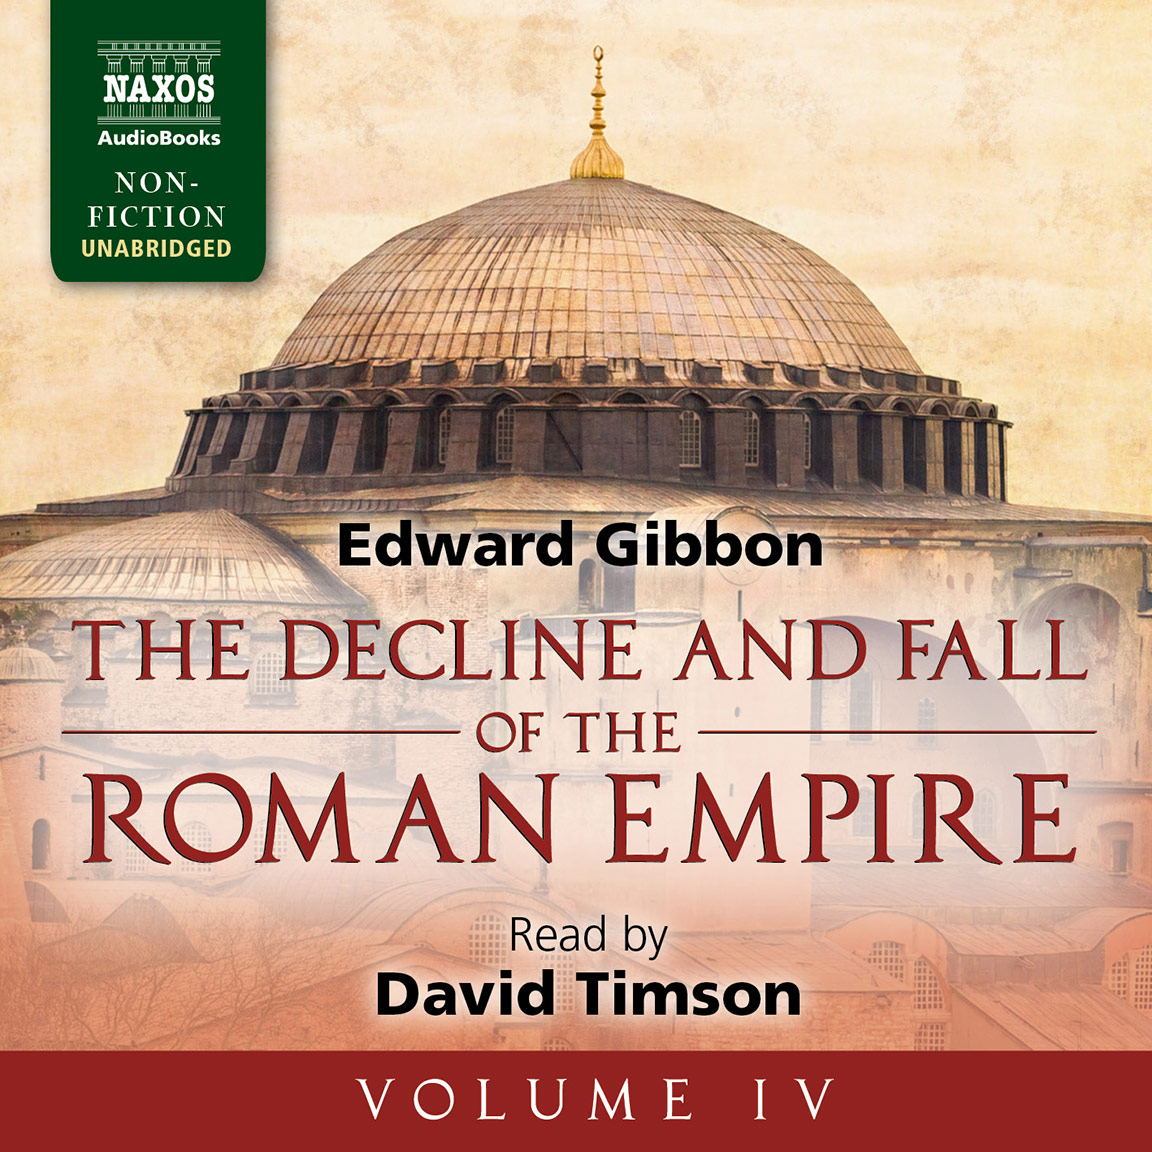 Decline and Fall of the Roman Empire